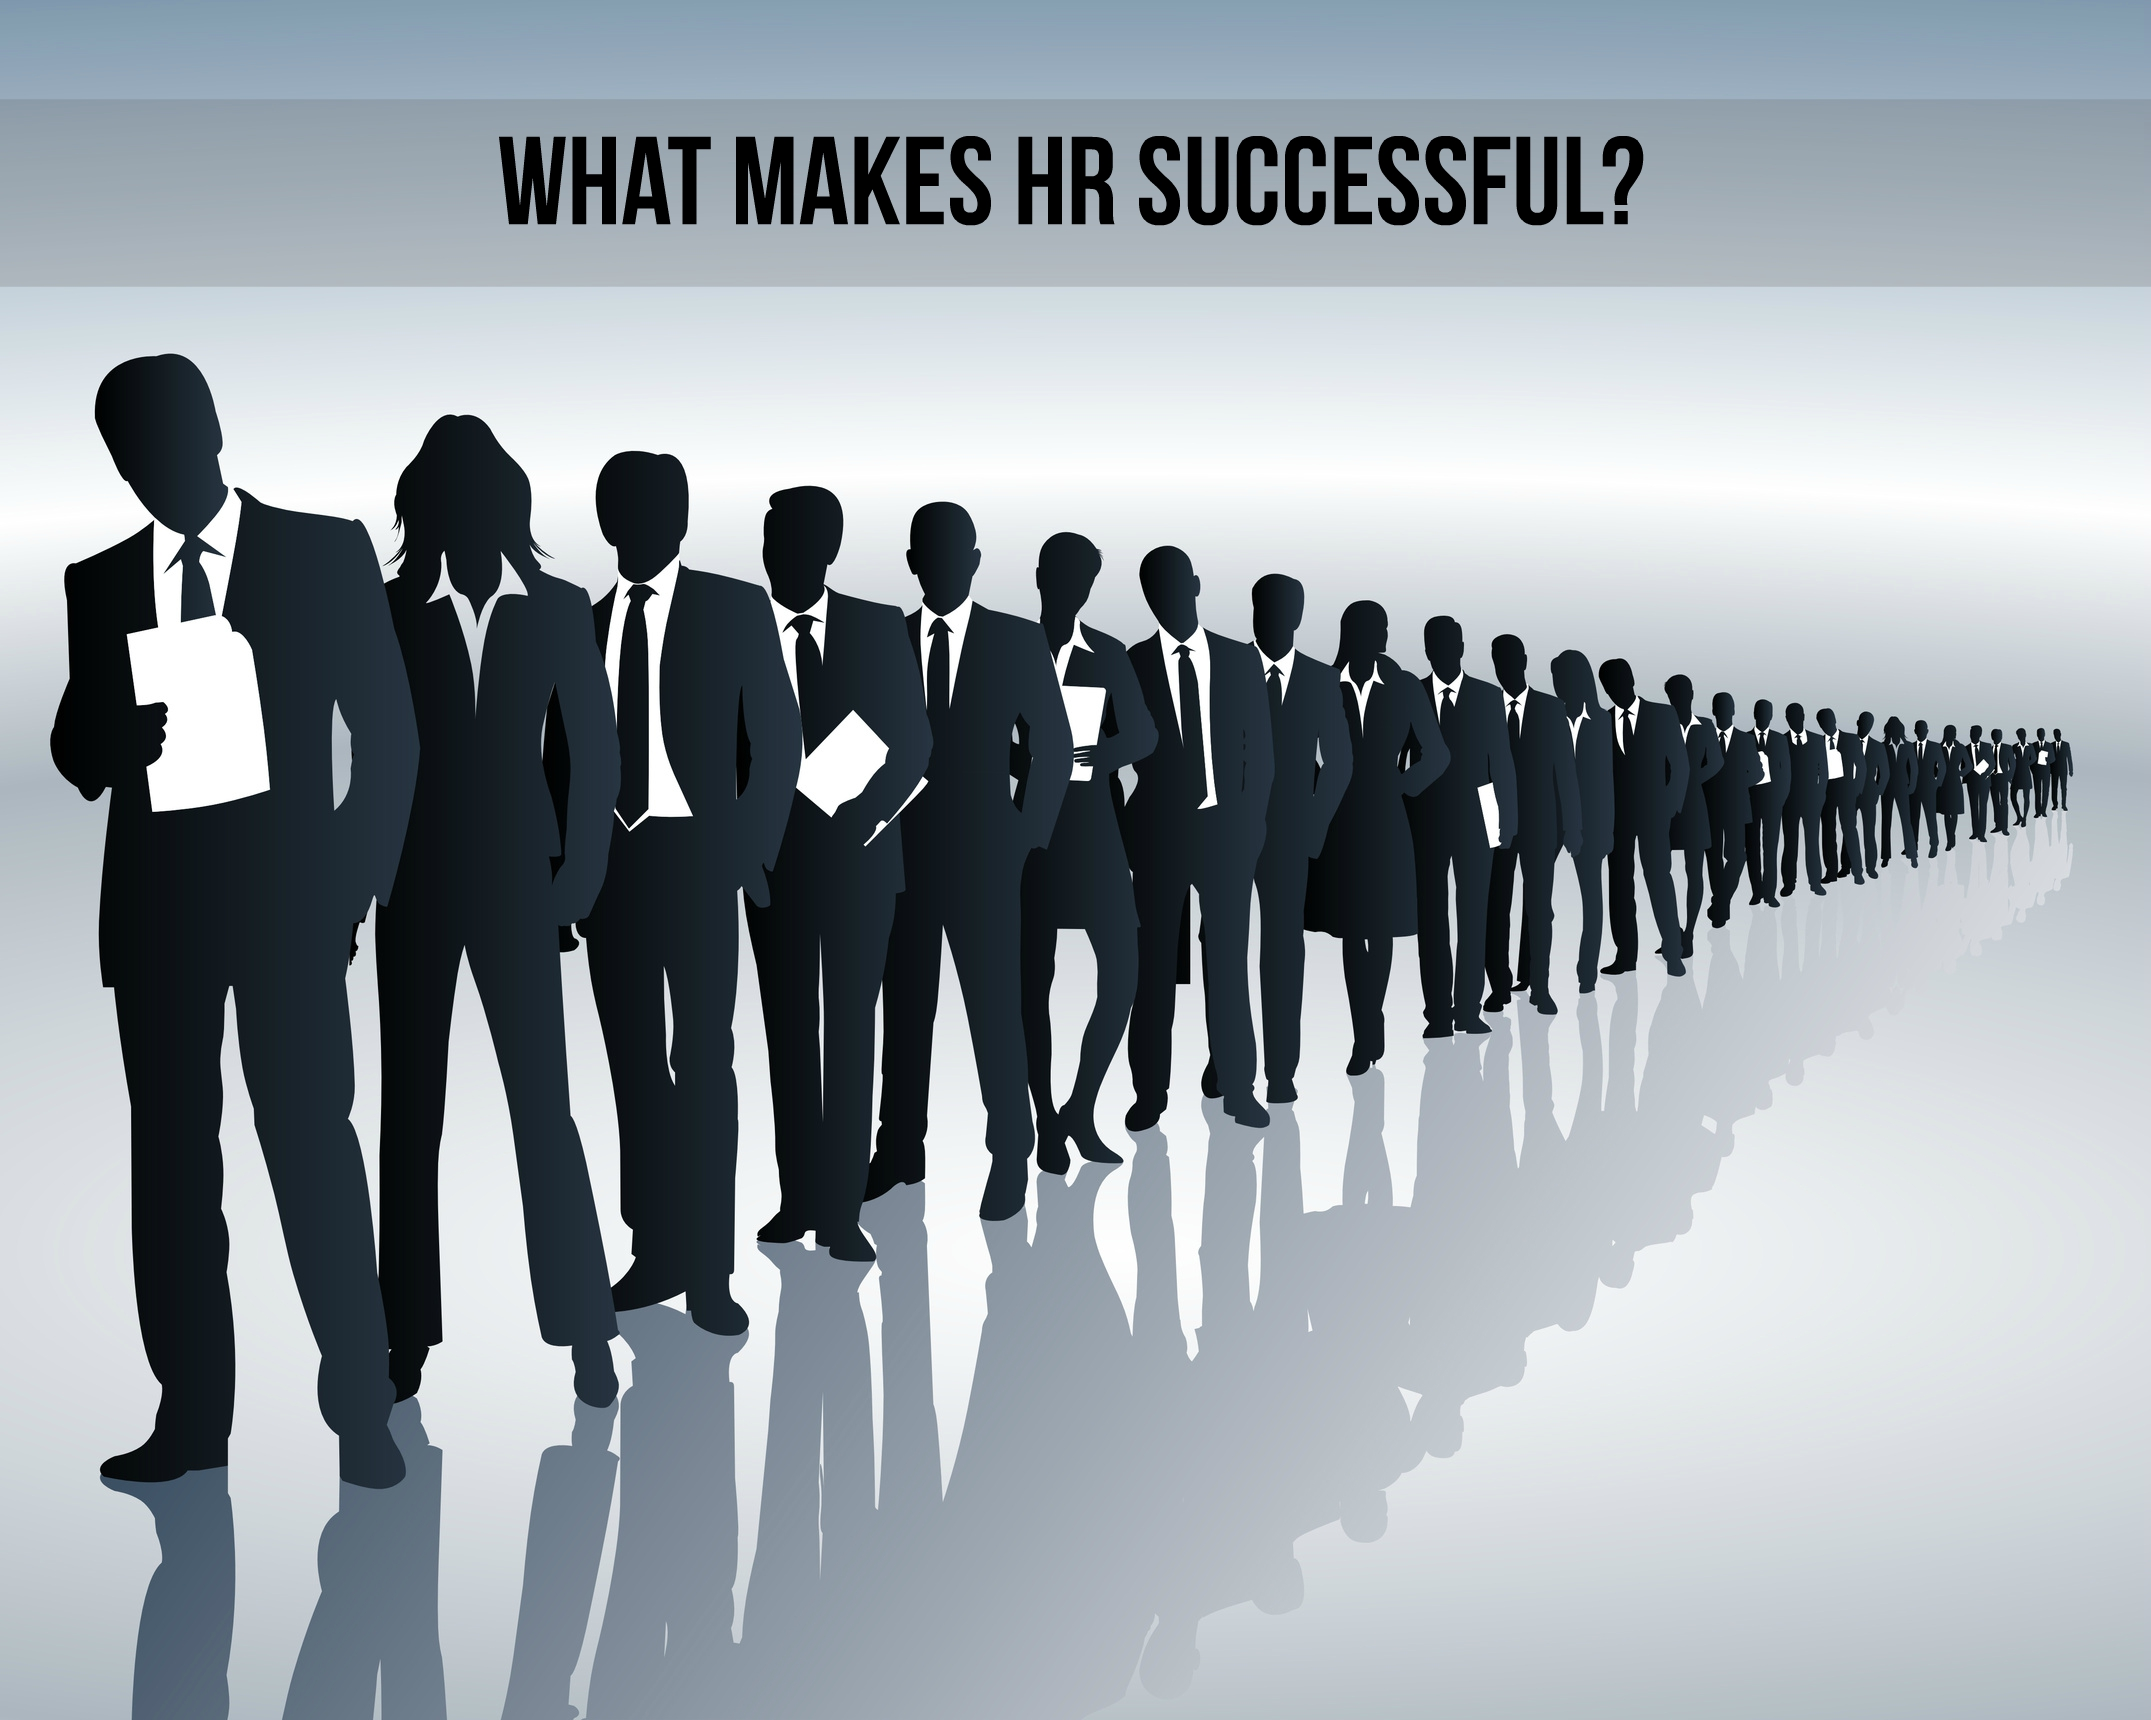 HR success factors